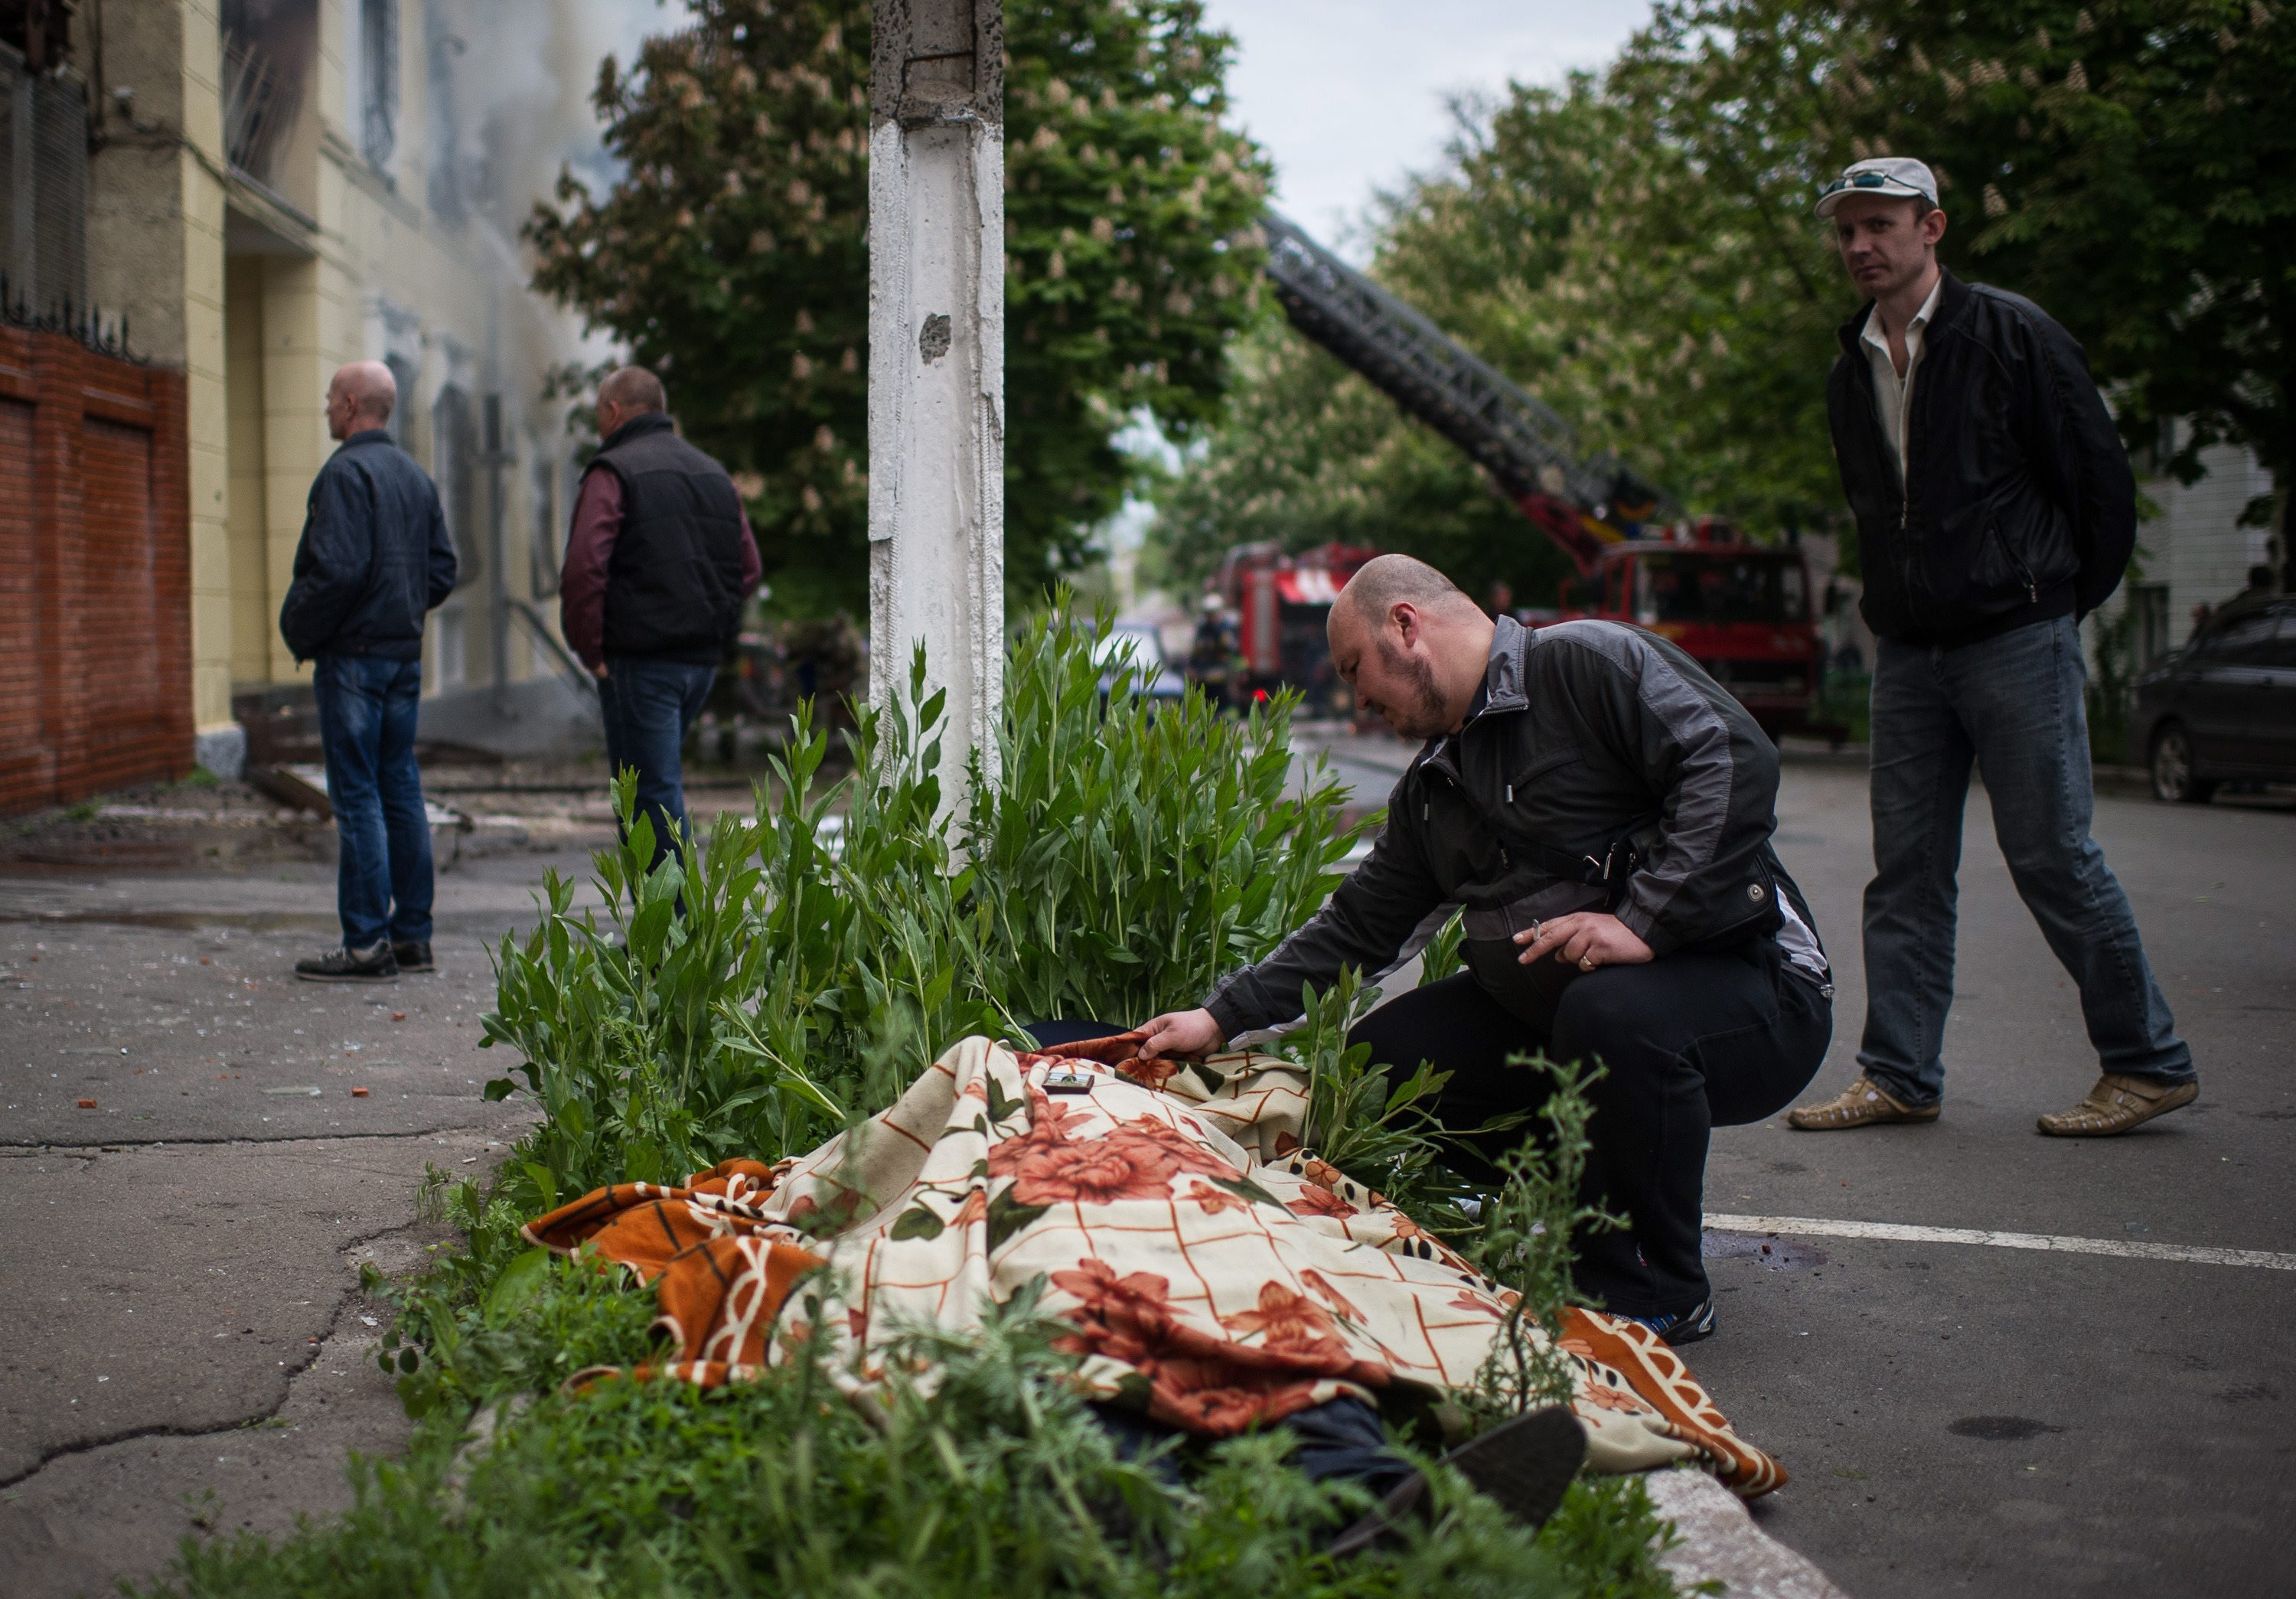 epa04198176 A man inspects the dead body near the Mariupol police station, Ukraine, 09 May 2014. Two eastern Ukrainian provinces will go ahead with a referendum on seceding from the country as planned this weekend despite Russian President Vladimir Putin's call for a delay, separatist leaders told Russia's Interfax news agency on 08 May. 'The referendum on May 11 will take place,' said Miroslav Rudenko, a separatist leader of the self-proclaimed Donetsk People's Republic. The secession referendum will let the three million residents of the provinces of Luhansk and Donetsk vote on whether they want to stay part of Ukraine. Ukrainians opposed to a split see it as a precursor to an eventual merger with Russia, as happened with Crimea in March.  EPA/ALEXEY FURMAN ATTENTION EDITORS: PICTURE CONTAINS GRAPHIC CONTENT